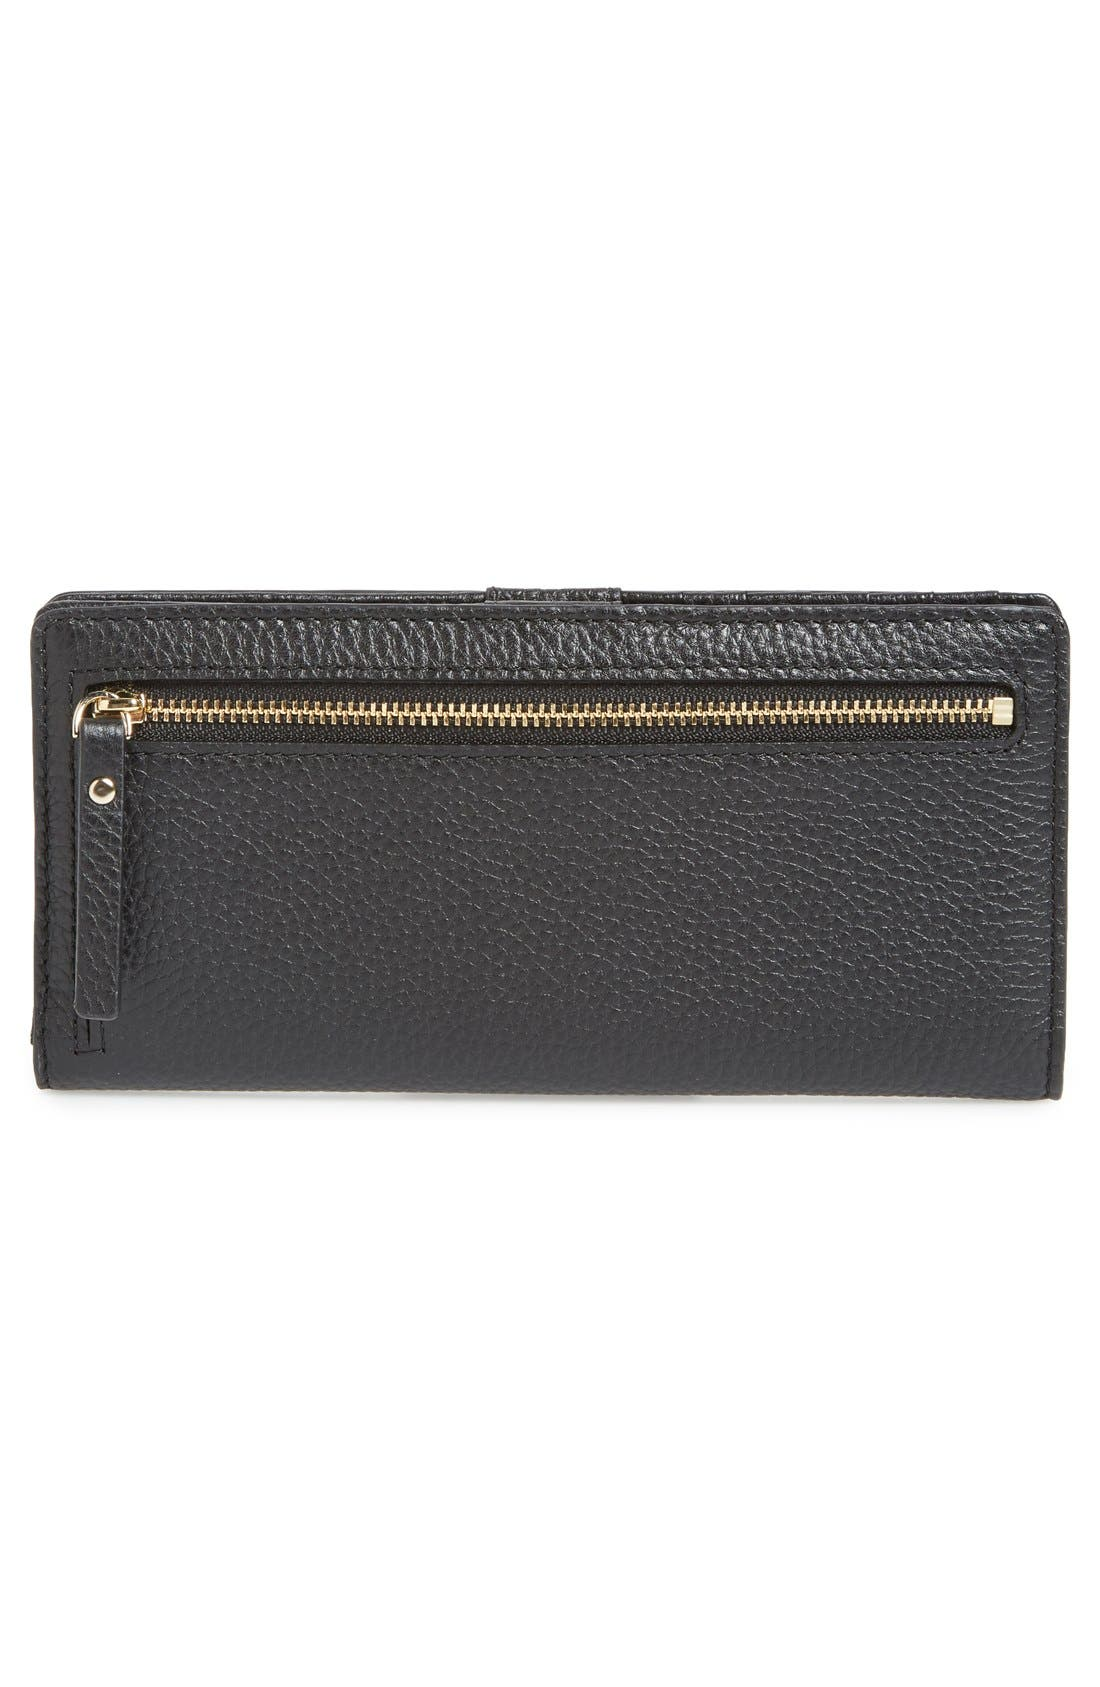 Alternate Image 3  - kate spade new york 'cobble hill - large stacy' leather wallet